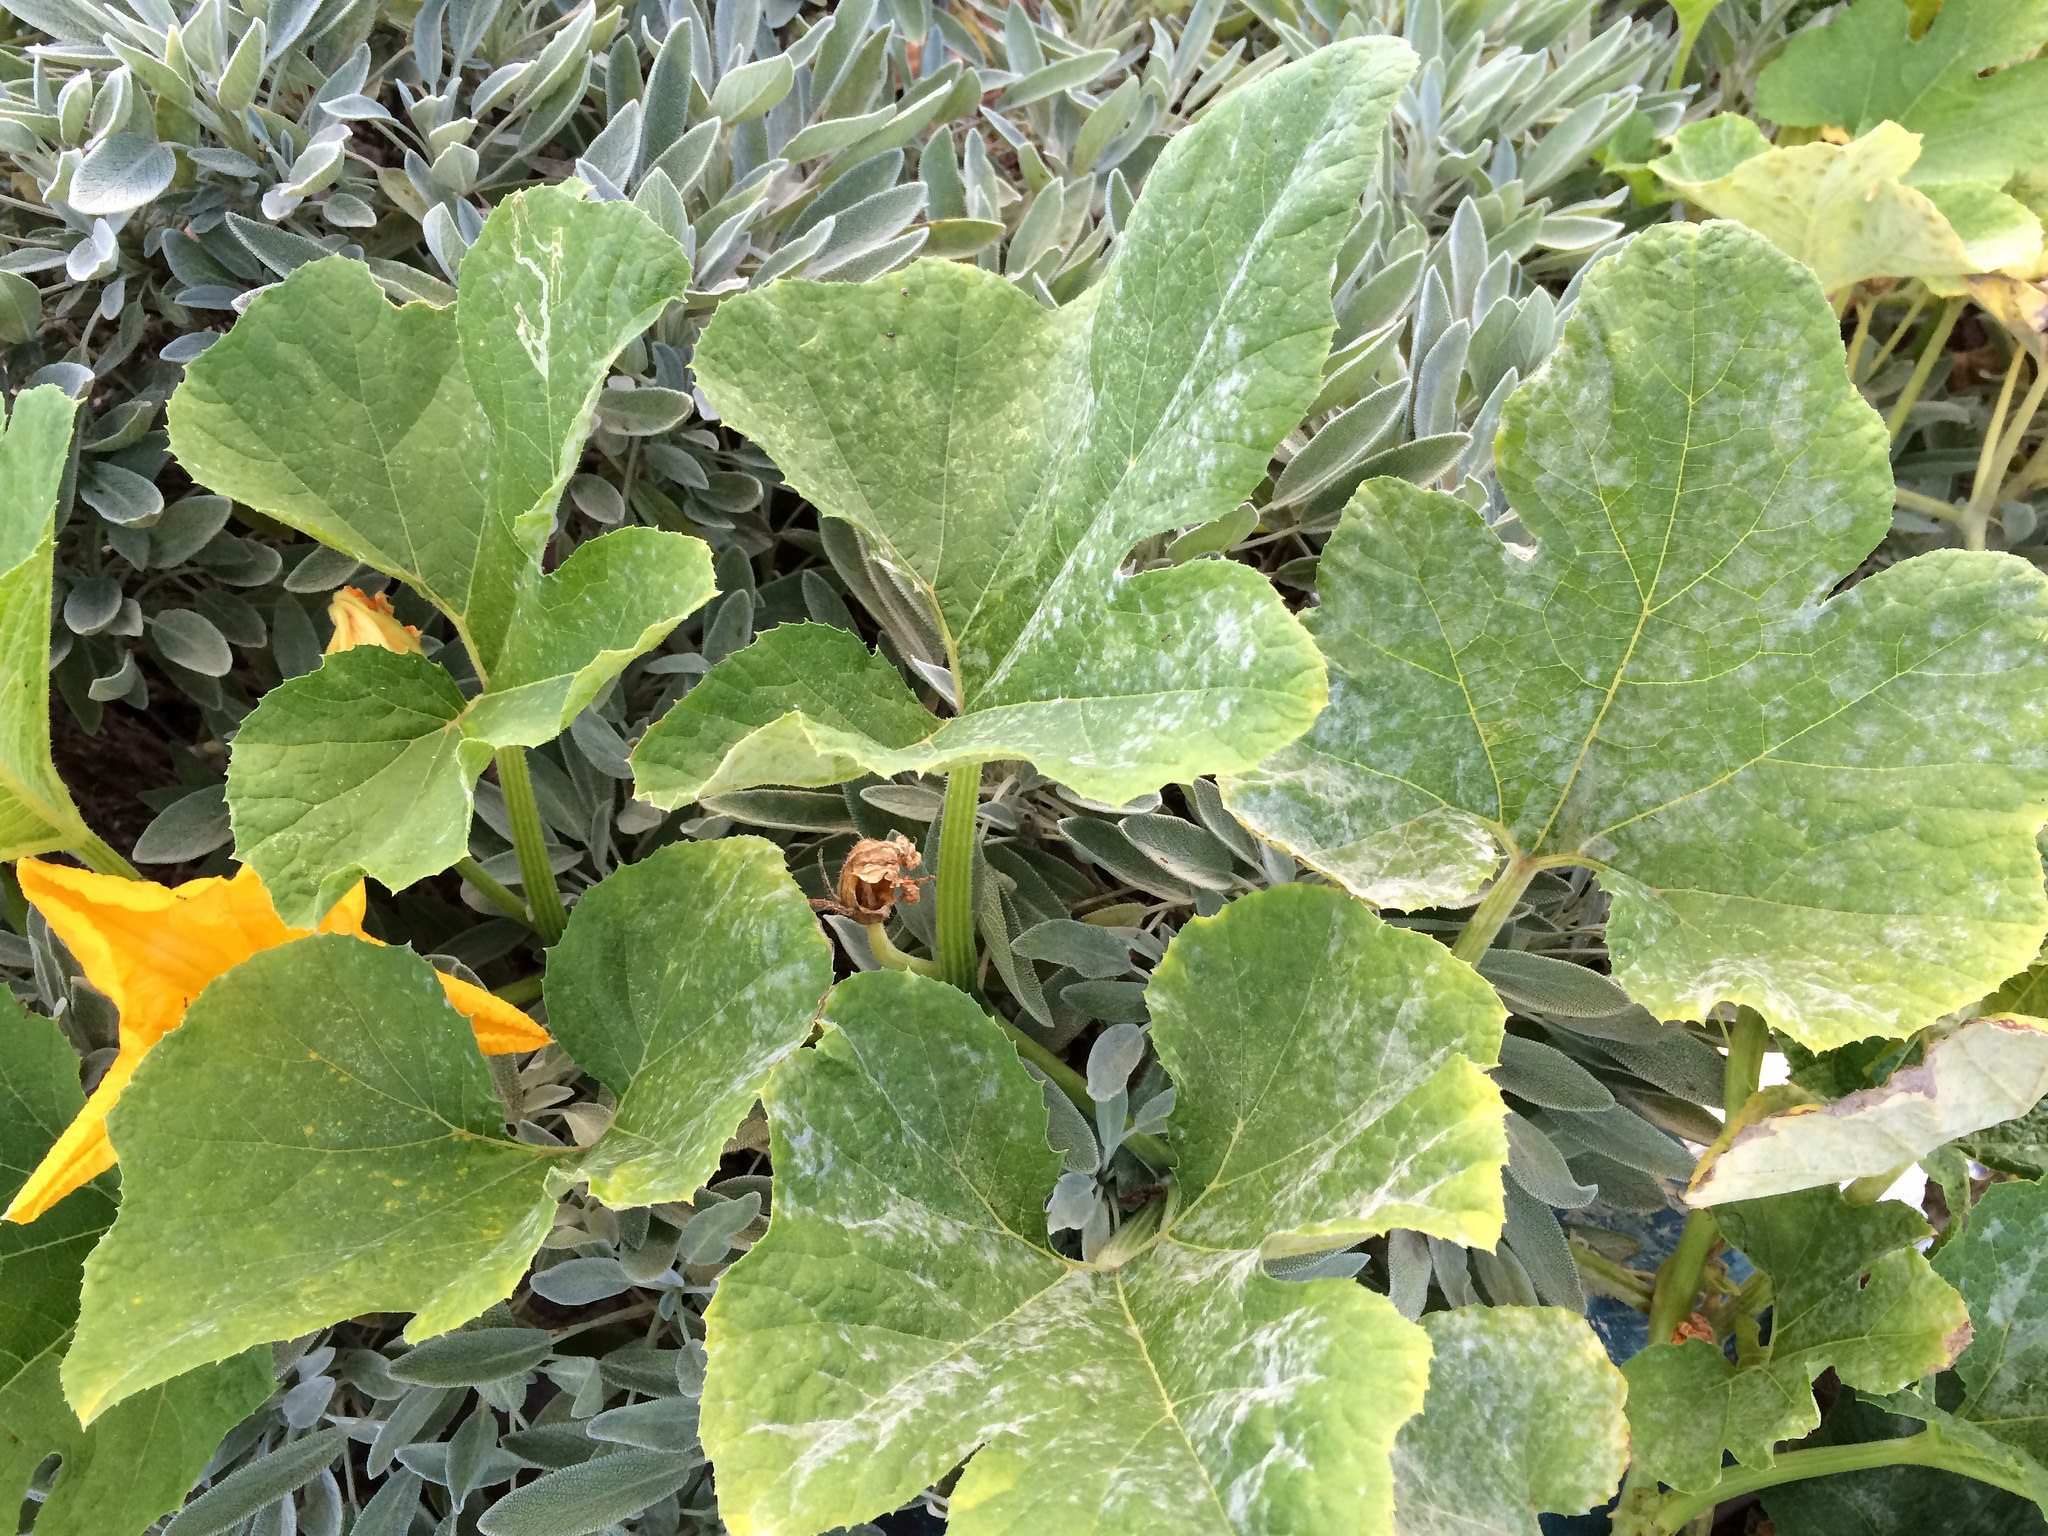 how to get rid of powdery mildew on squash